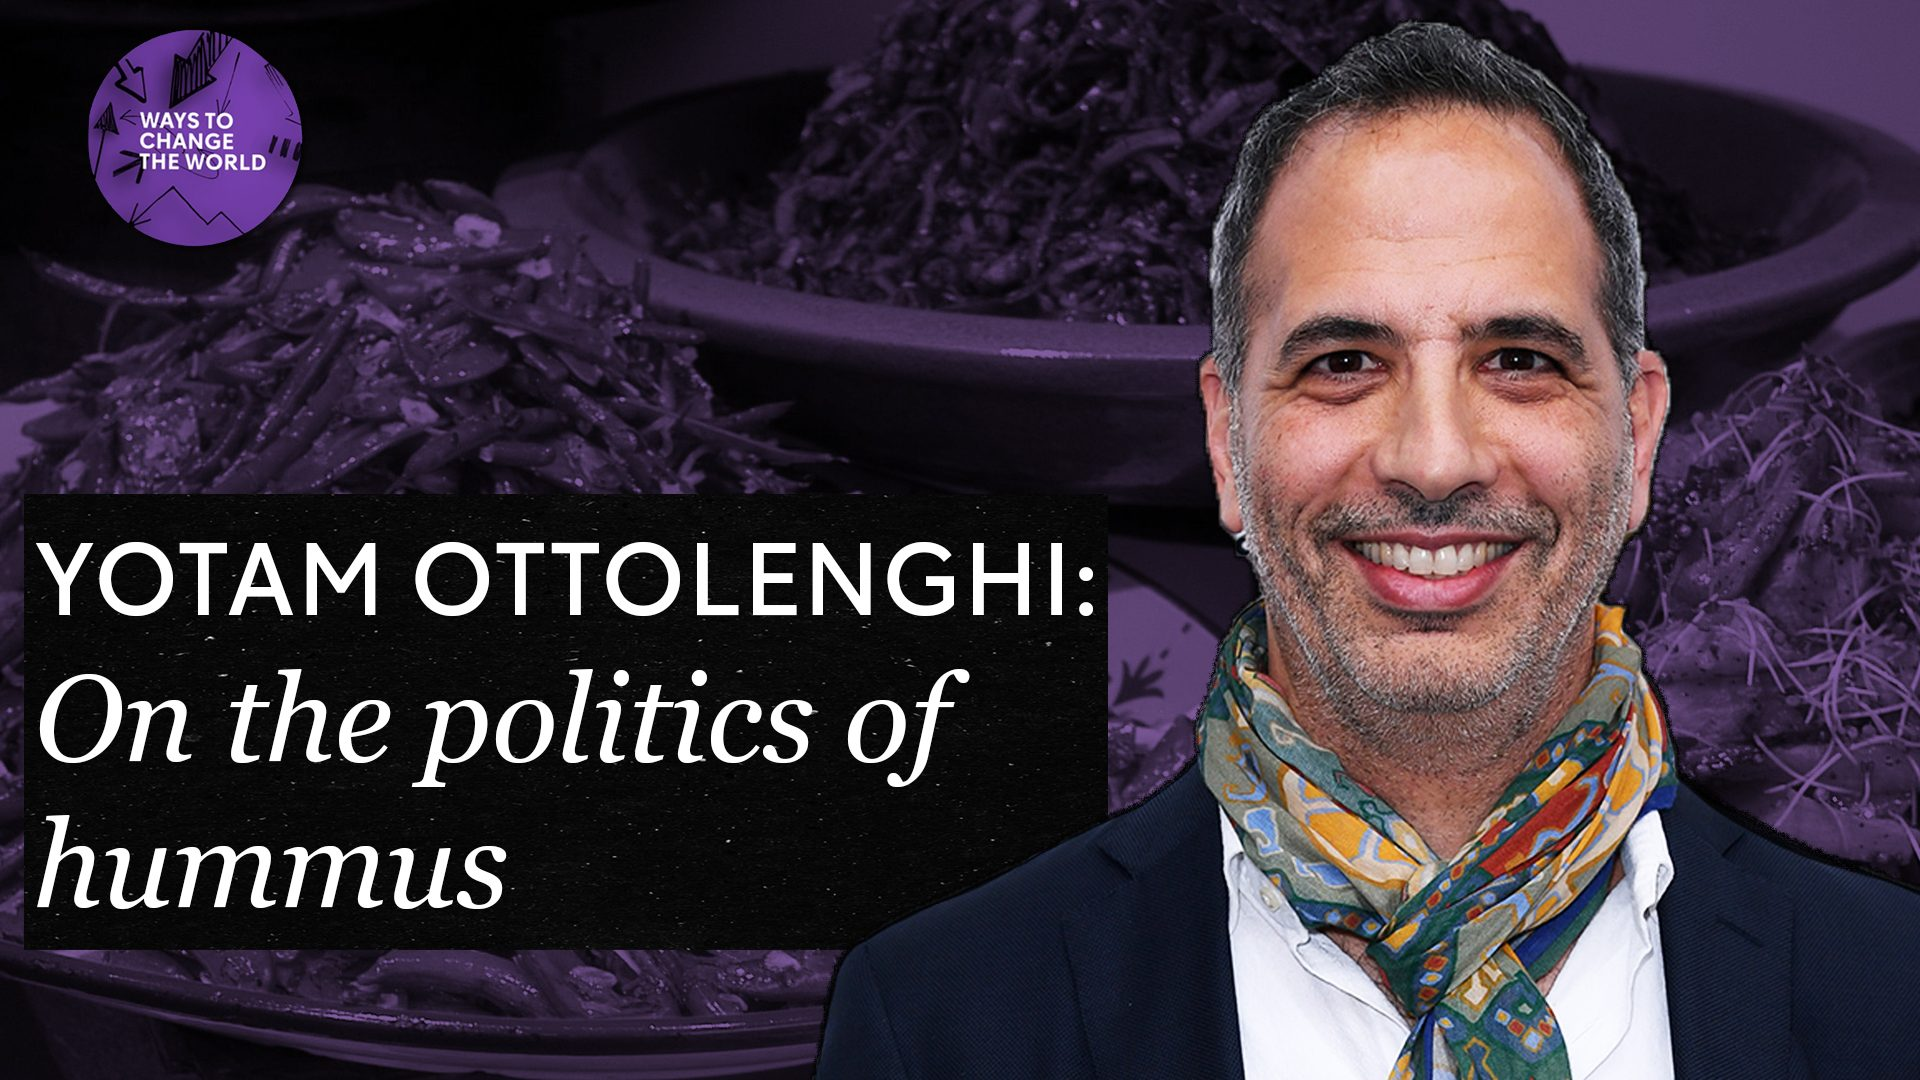 Series 6, Episode 5: Yotam Ottolenghi - channel 4